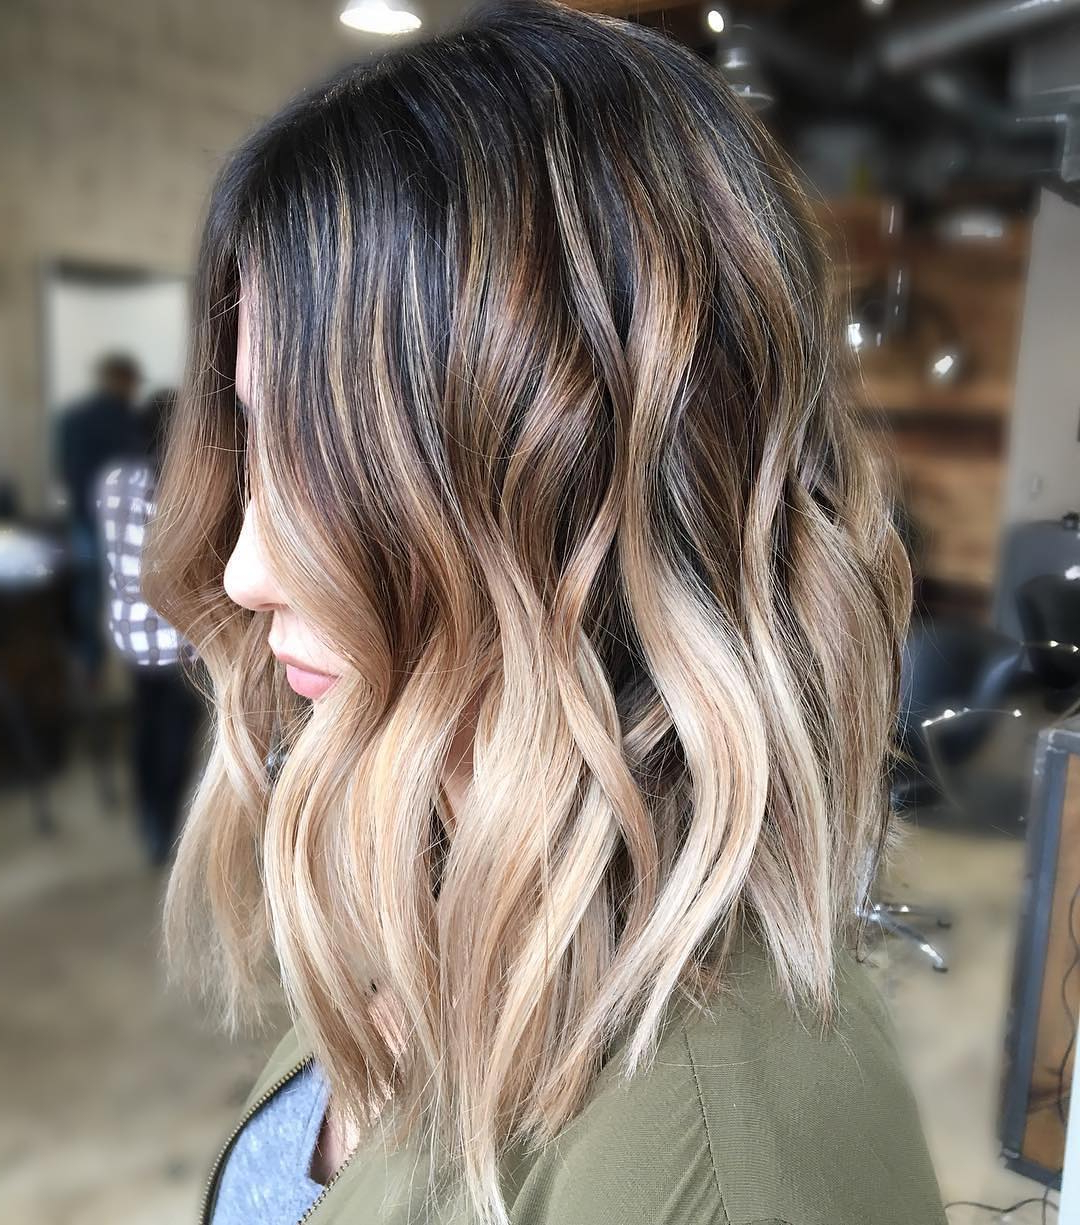 Preferred Ombre Medium Hairstyles Intended For Pretty Balayage Ombre Hair Styles For Shoulder Length Hair, Medium (View 17 of 20)